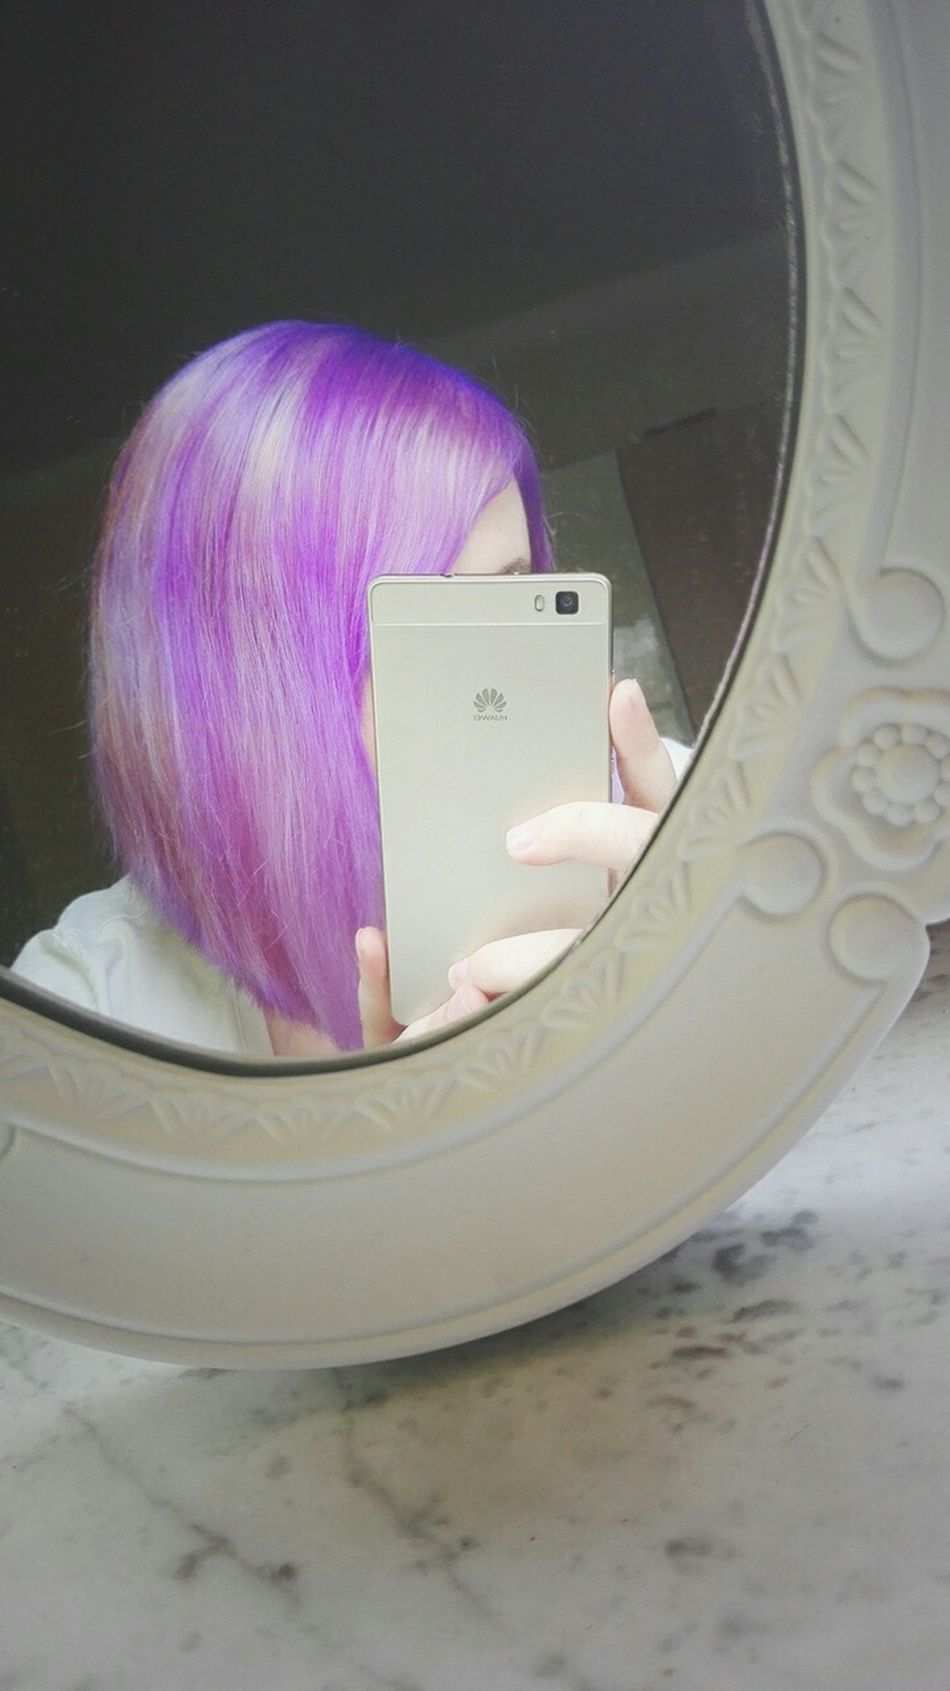 Morning... Me ThatsMe Morning Mondaymorning Mirror Mirrorselfie Shorthair Coloredhair Purple Hair Haircolor Hairstyle Nofilter Picoftheday Photooftheday Like4like Girl Woman Alternativegirl Metalhead Today :) Tired Early Morning Plugs Girlswithtattoos Girlswithpiercings